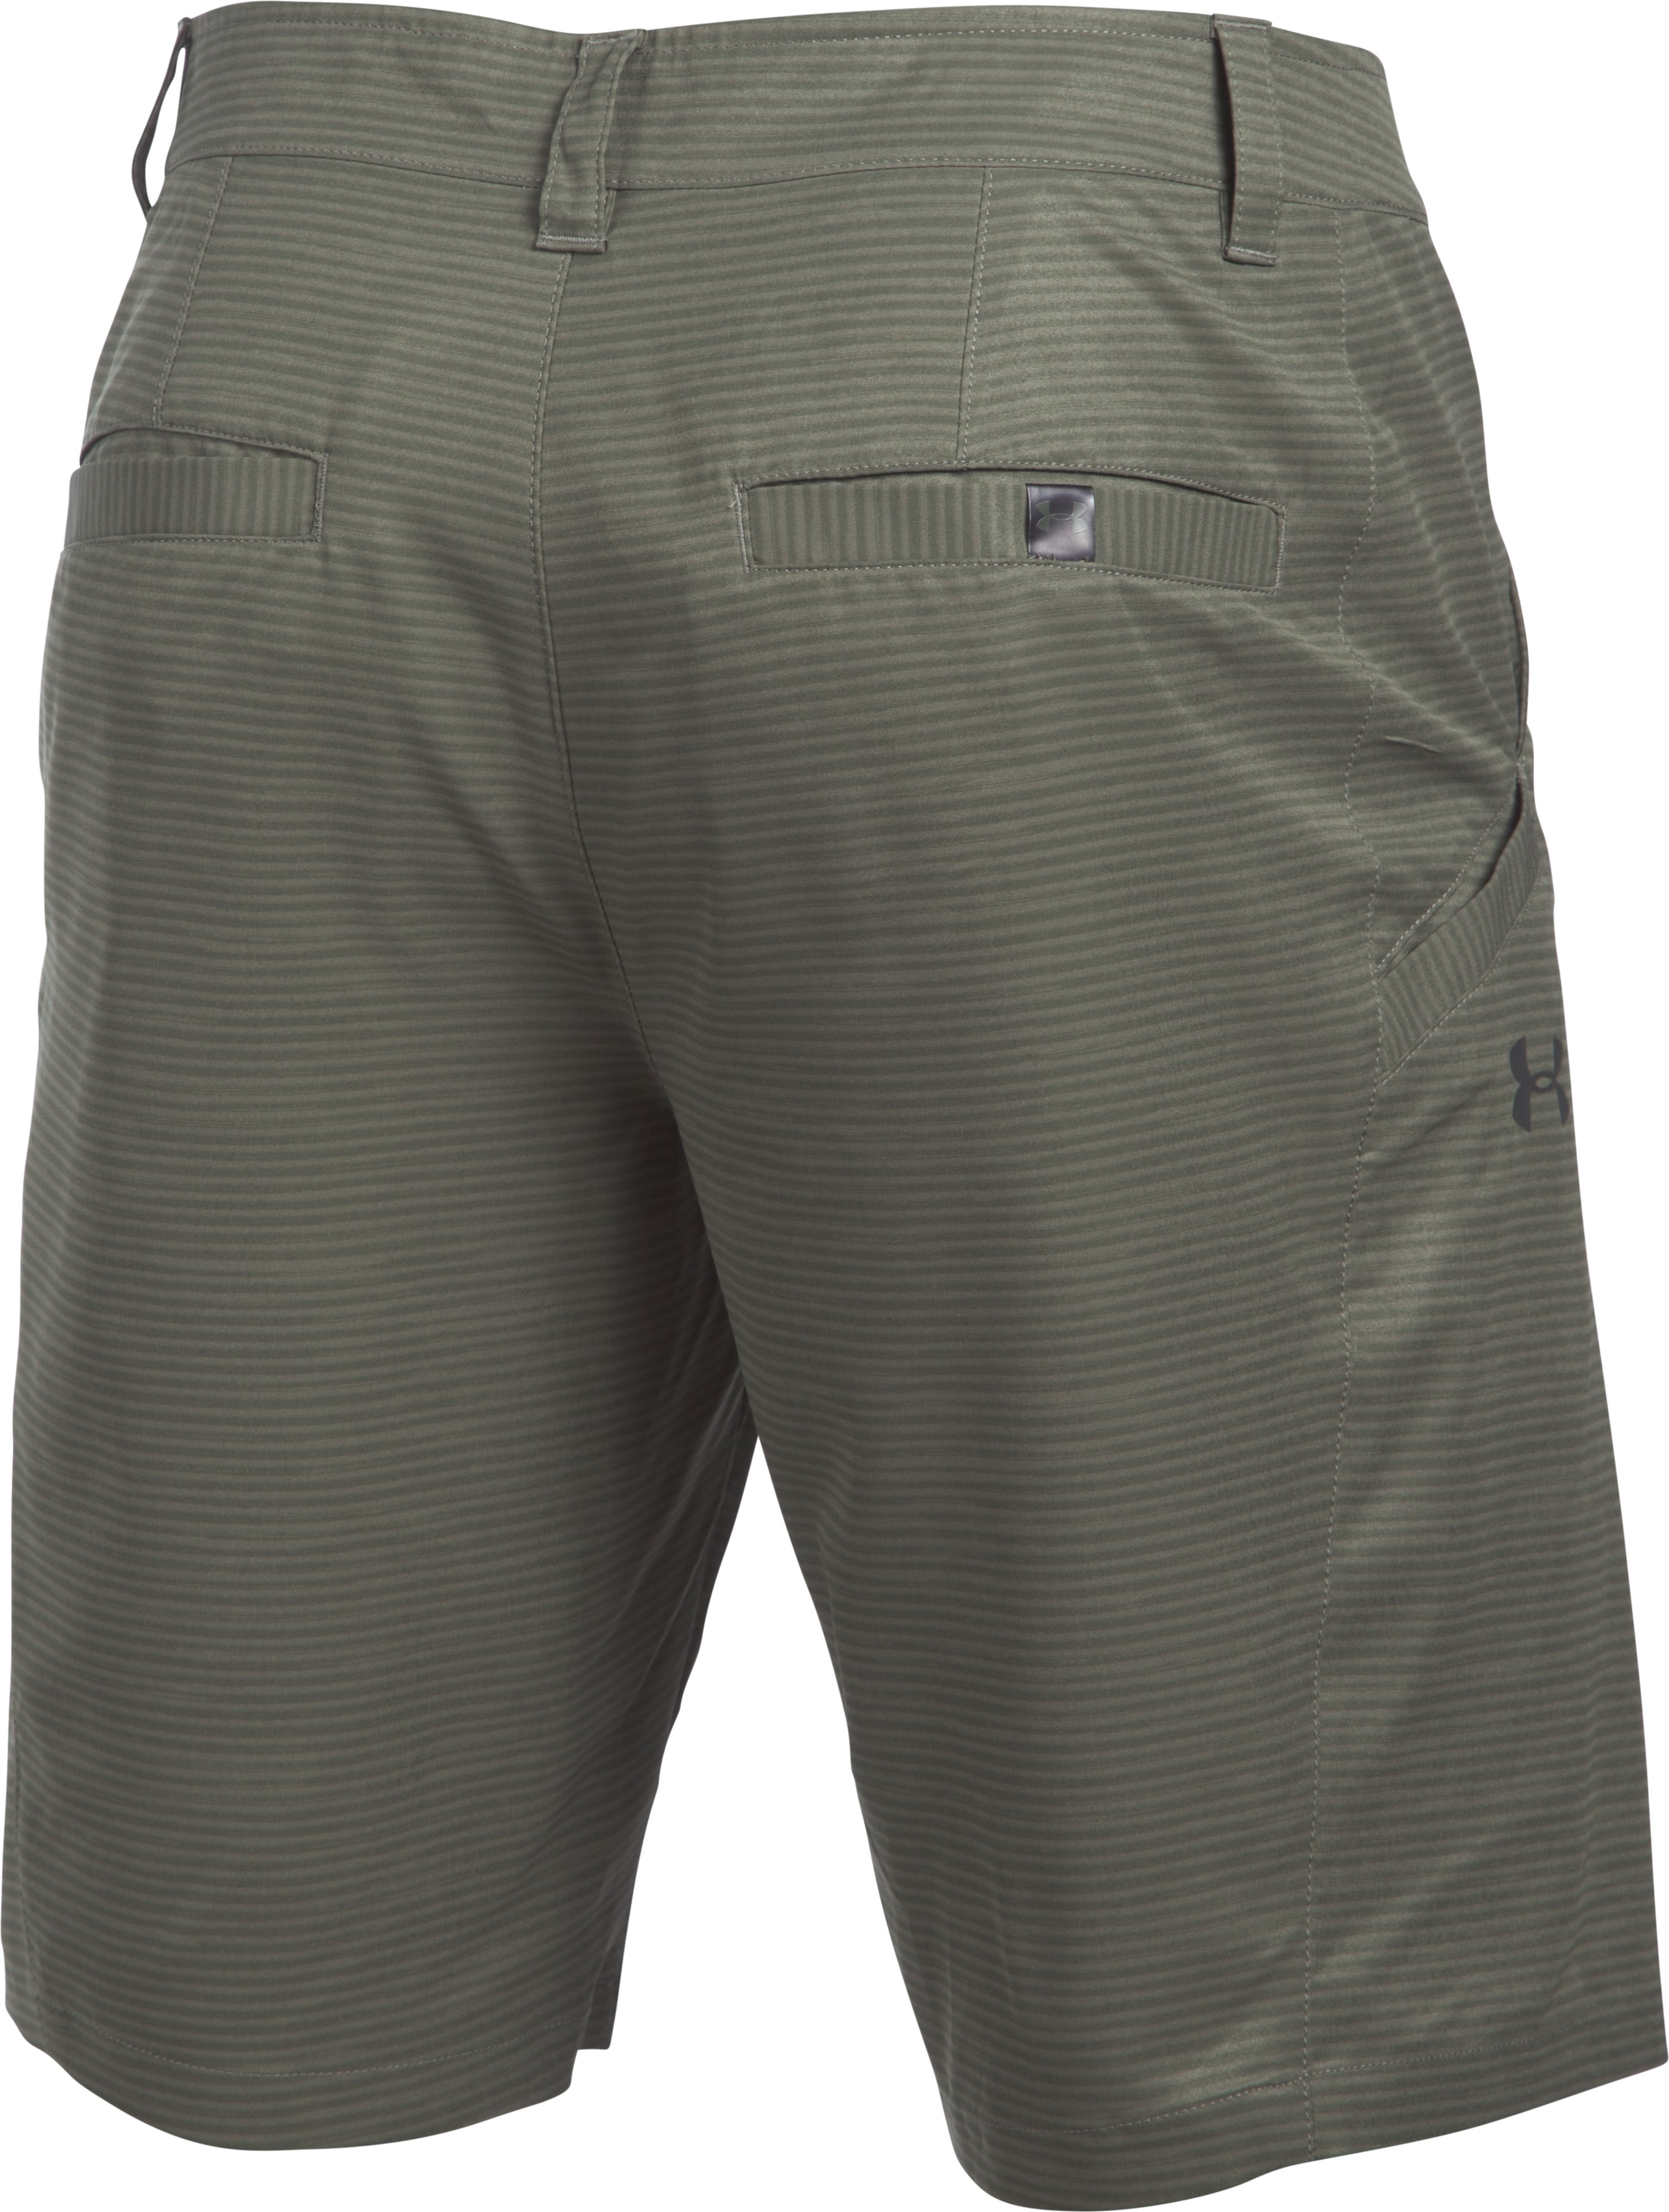 Men's UA Surf & Turf Stretch Amphibious Boardshorts, Foliage Green,